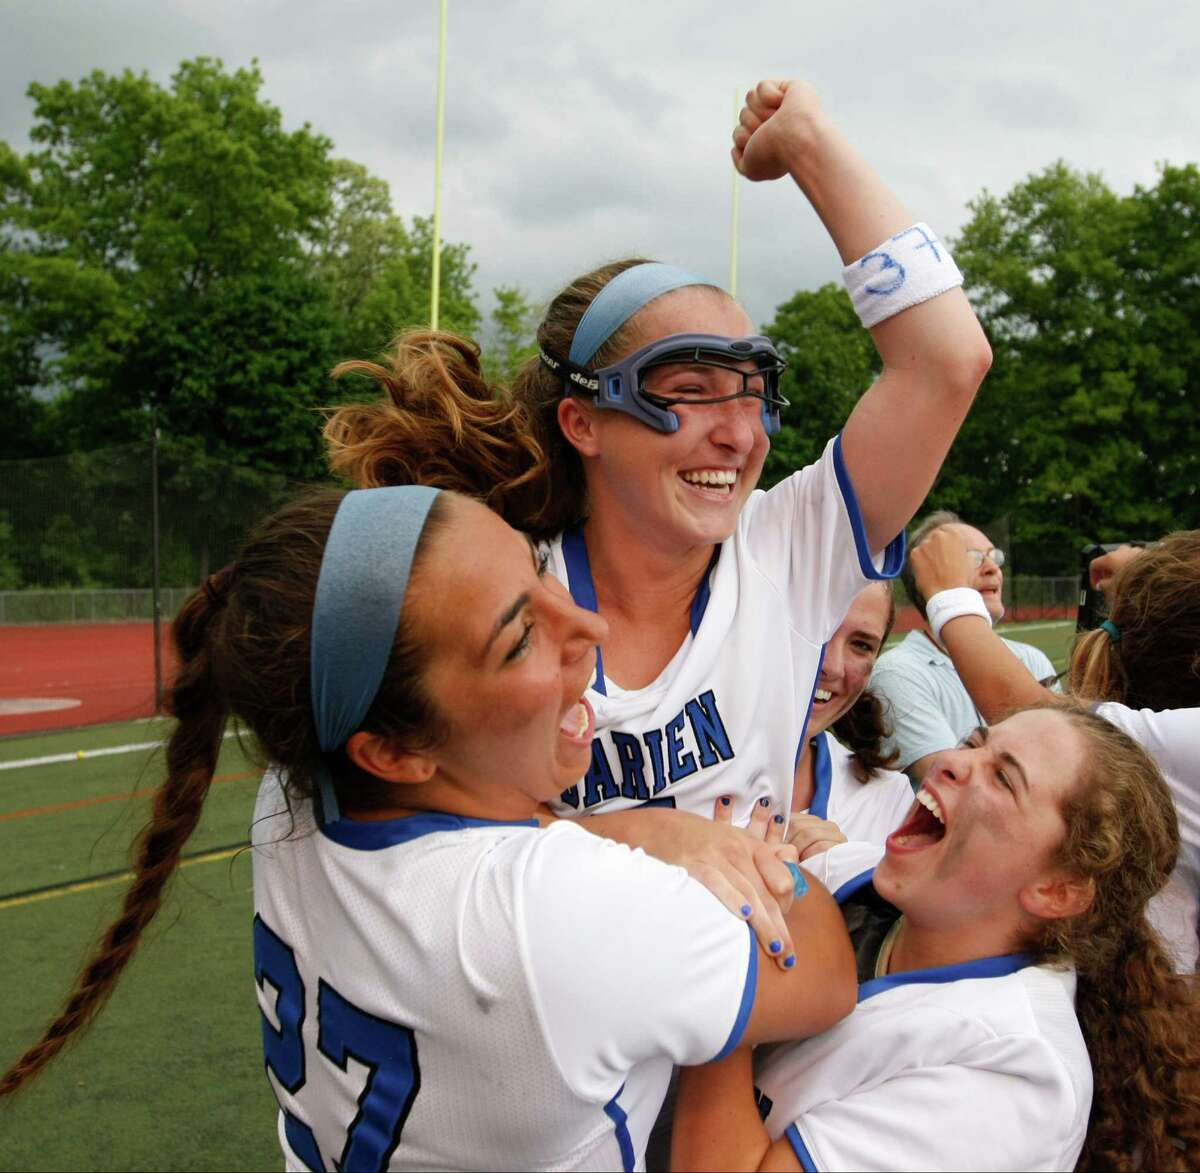 Darien's Mariah Matheis, center, is hoisted by her teammates, Gabriella Noto, left, and Isabella Scribiano after scoring the winning goal in the FCIAC Girls Lacrosse Championship at Brien McMahon High School in Norwalk, Conn. on Thursday, May 28, 2015. Darien defeated New Canaan 13-12 in triple overtime.